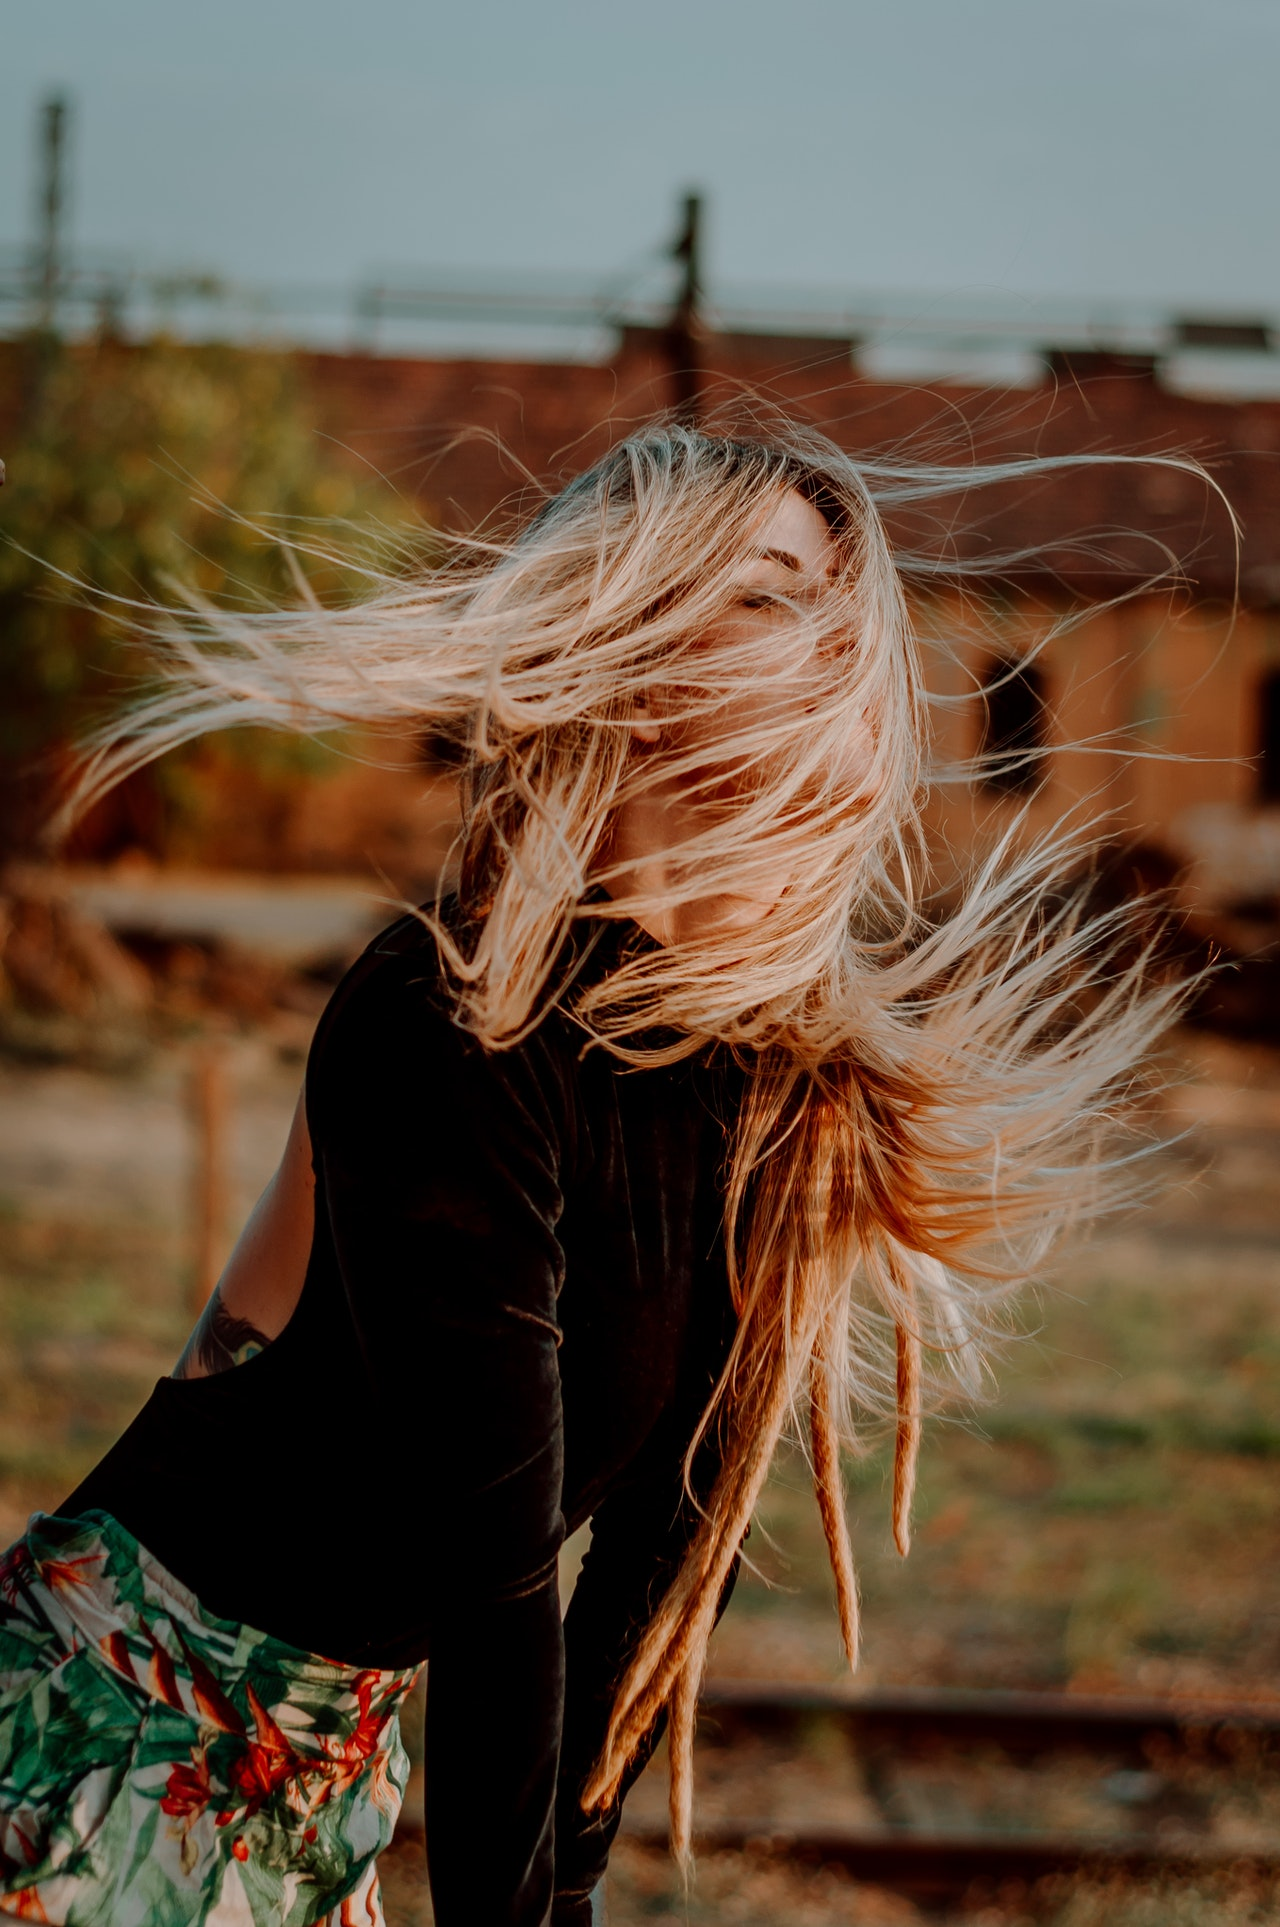 wind blowing in hair